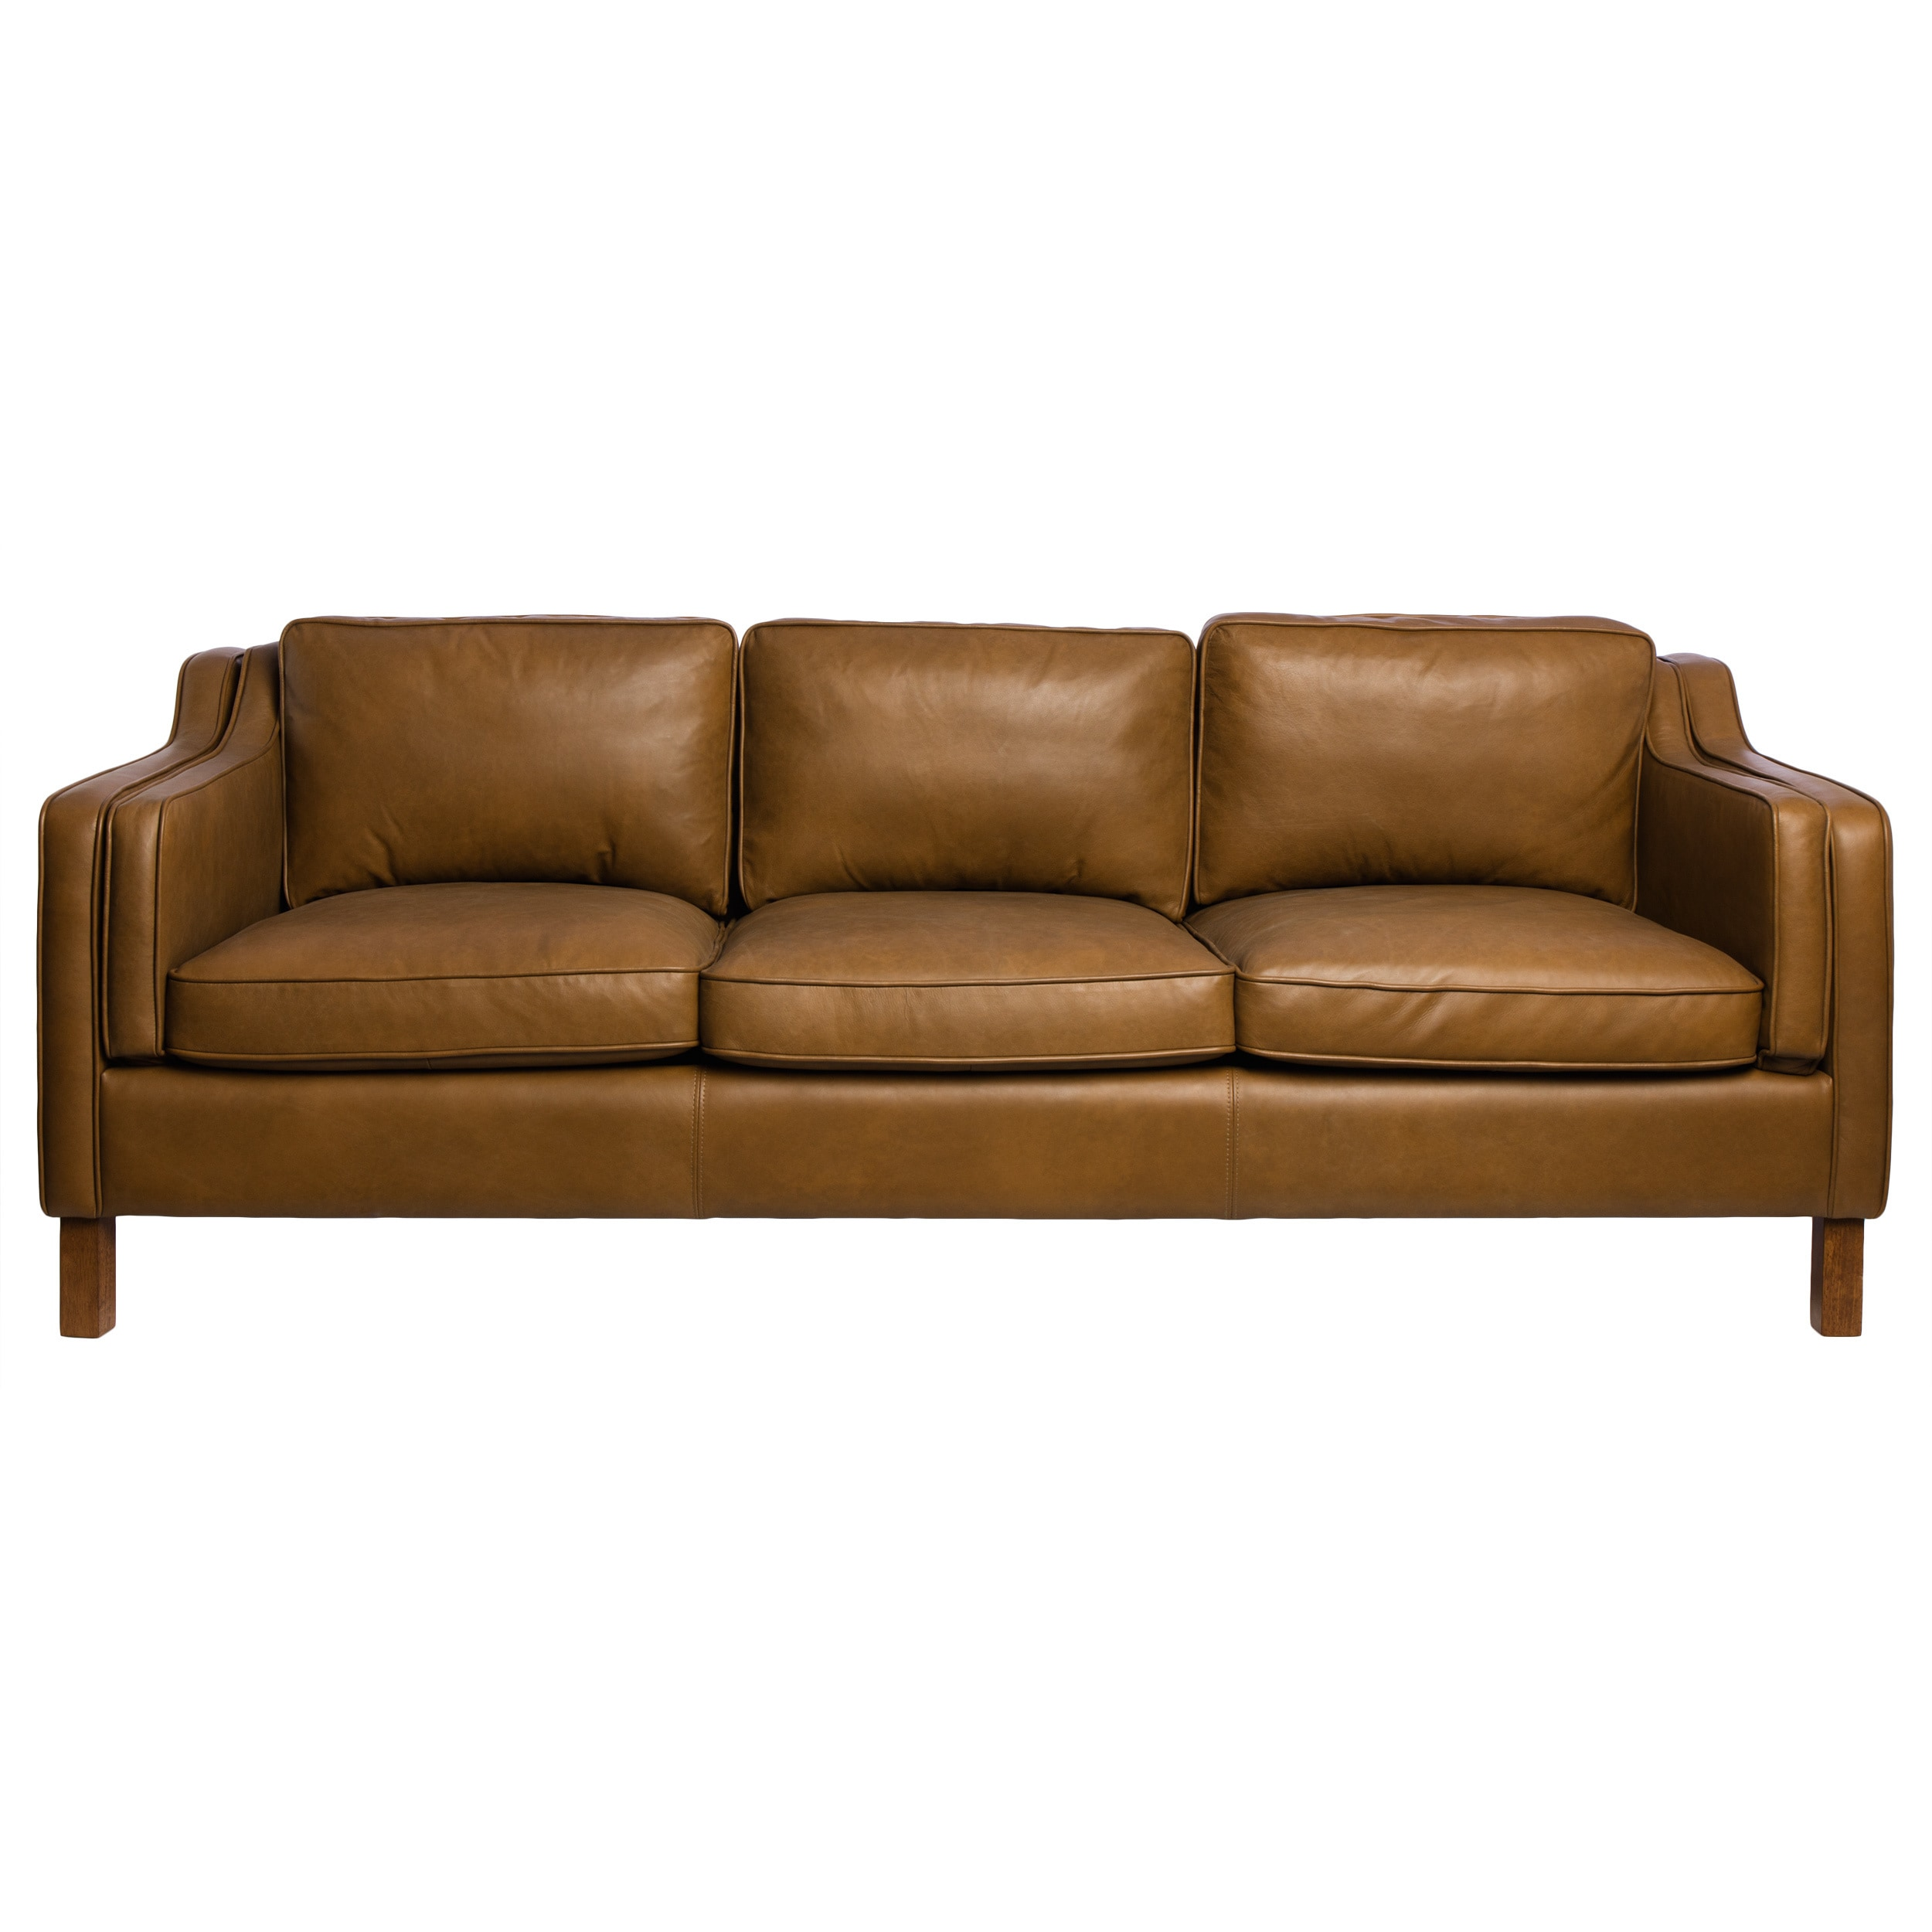 Canape Sofa Strick Bolton Canape 86 Inch Oxford Honey Leather Sofa